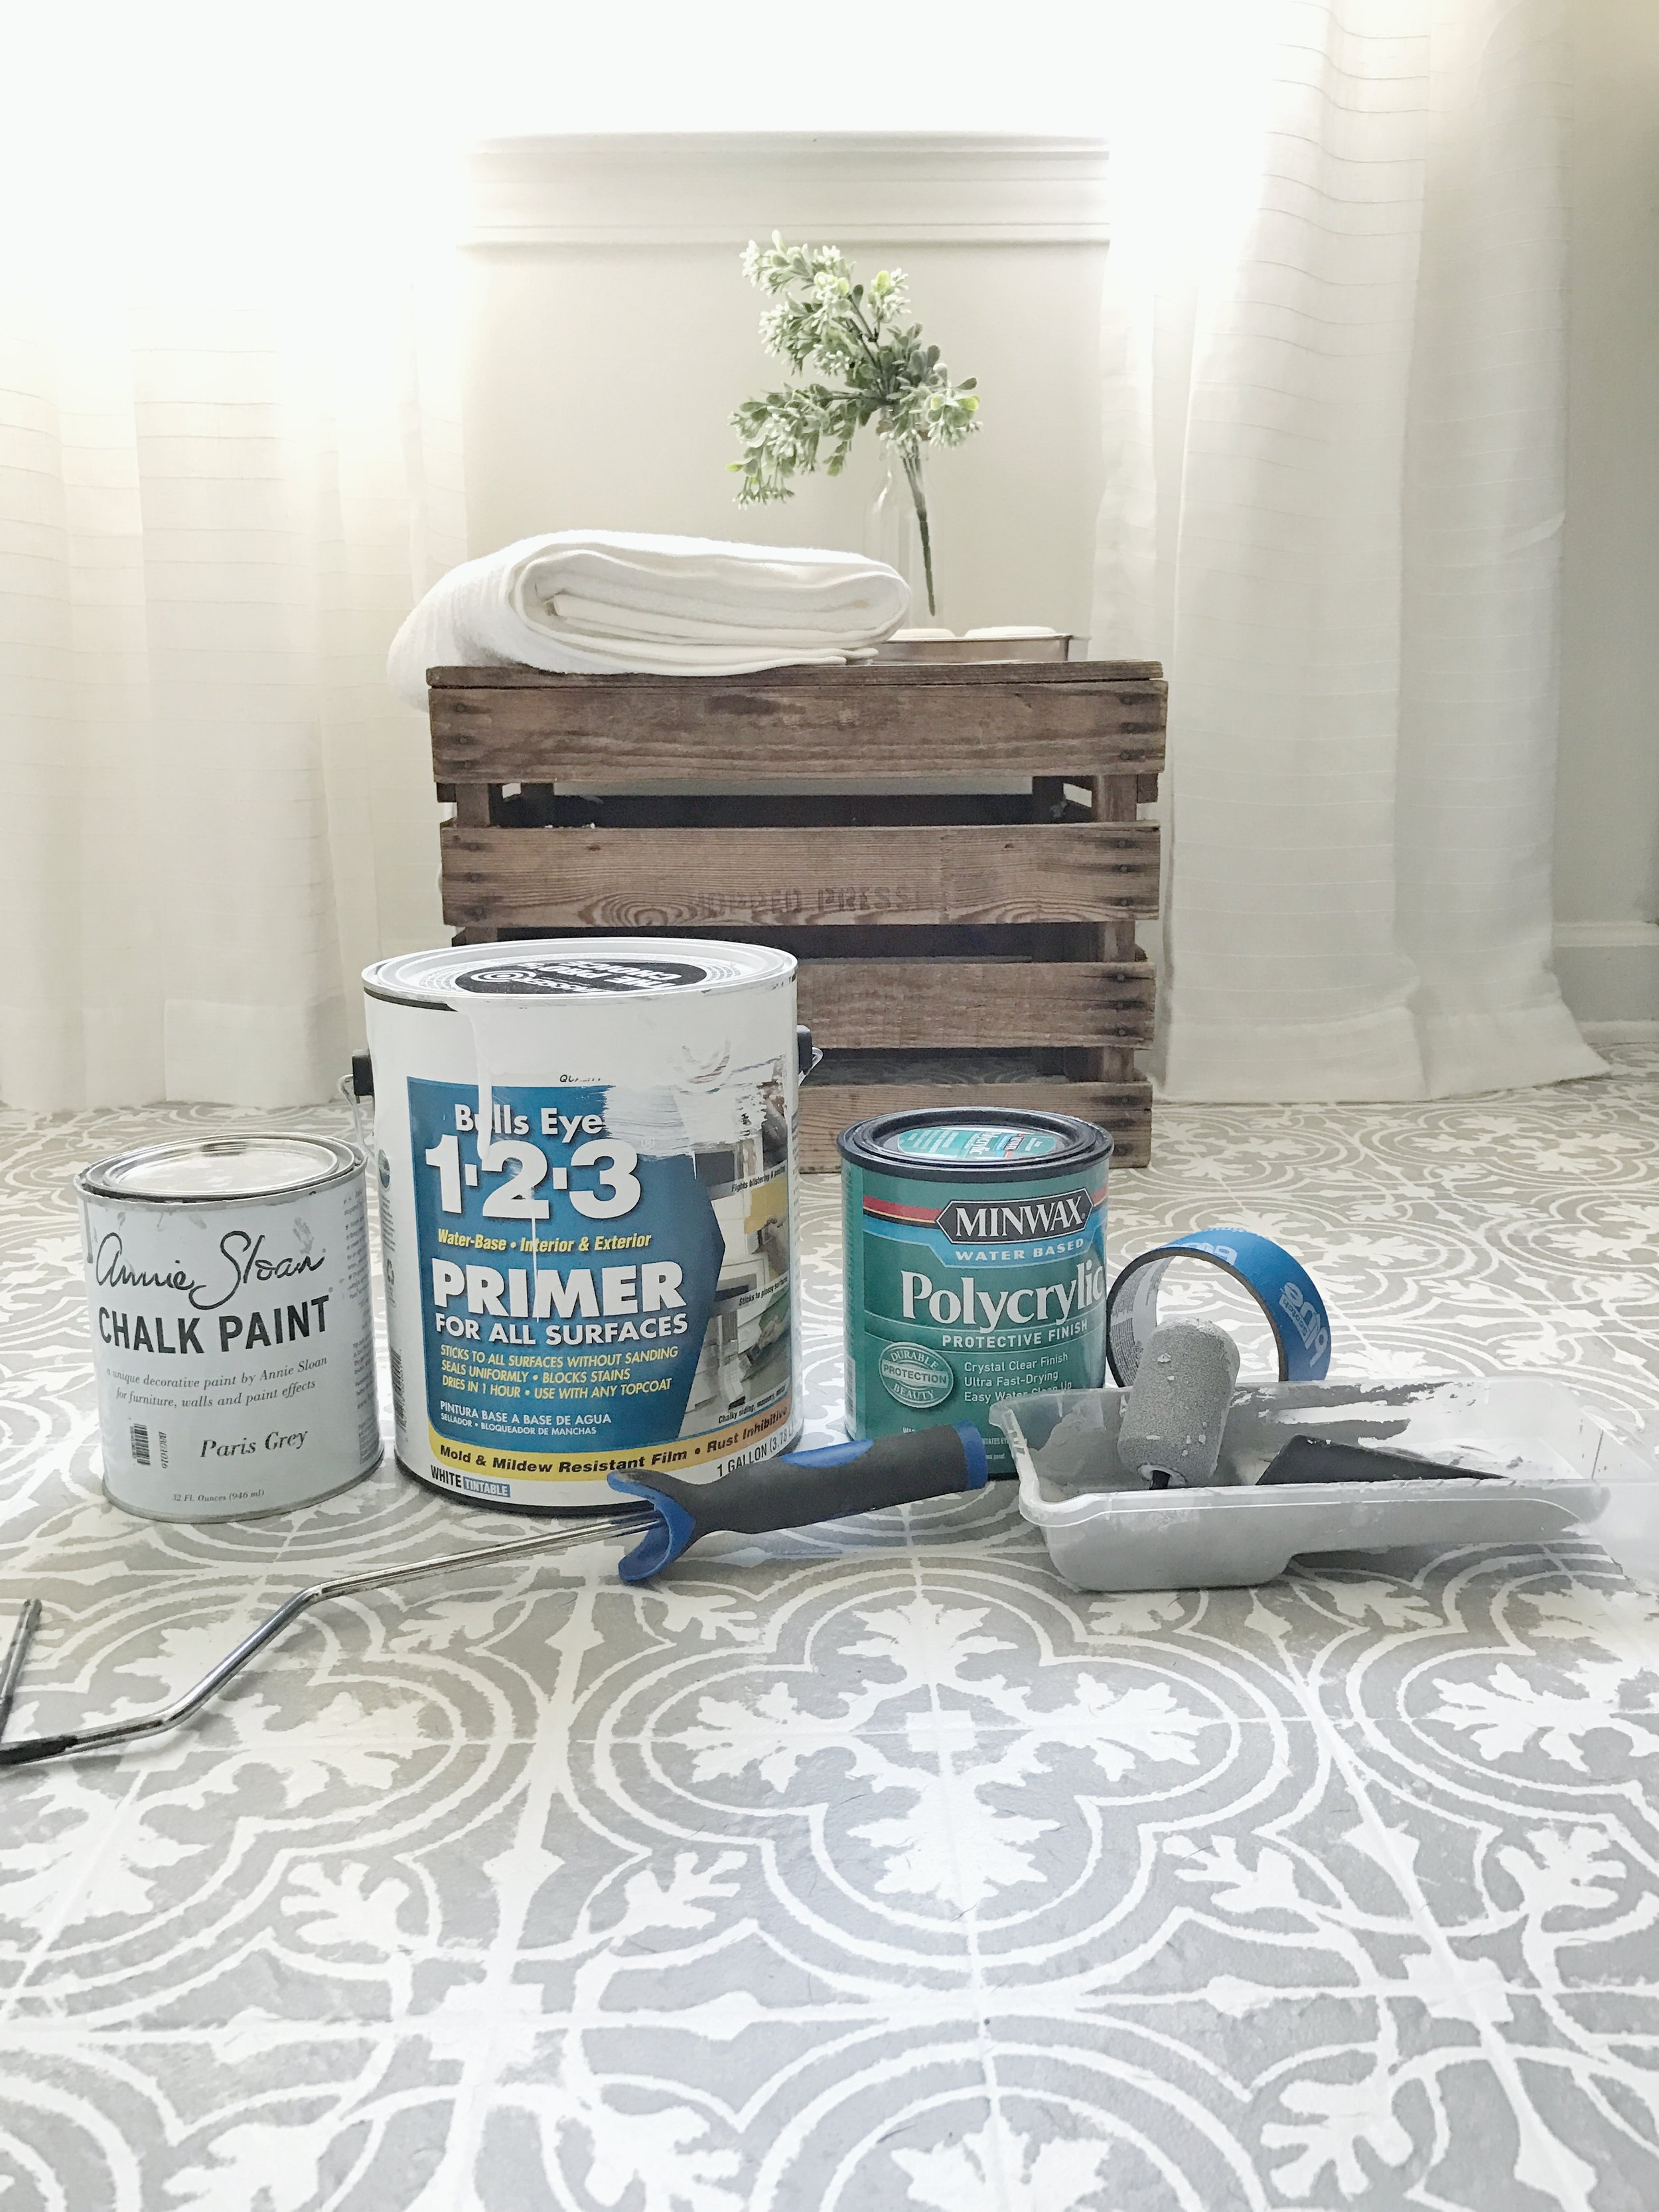 Plum Pretty Decor Design Co How To Paint Your Linoleum Or Tile Floors To Look Like Patterned Cement Tiles Full Tutorial